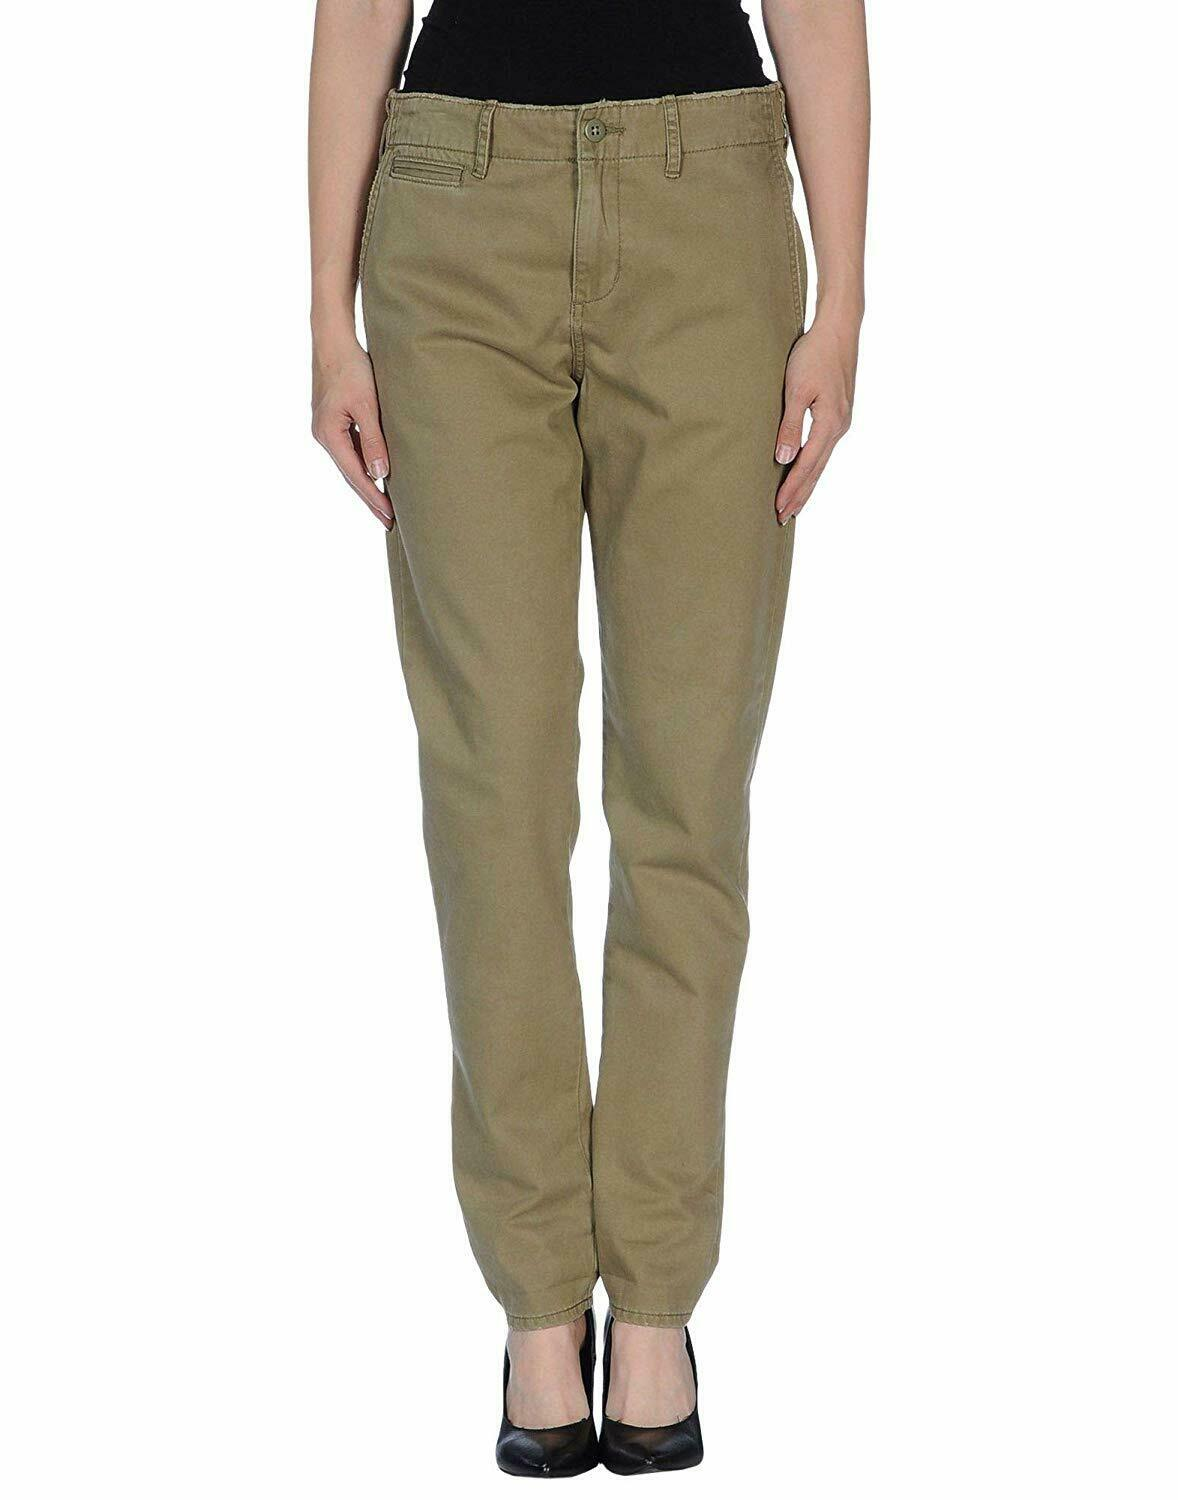 Denim & Supply Ralph Lauren Baumwolle Chino Hose Olive Grün Gr. 28 EU